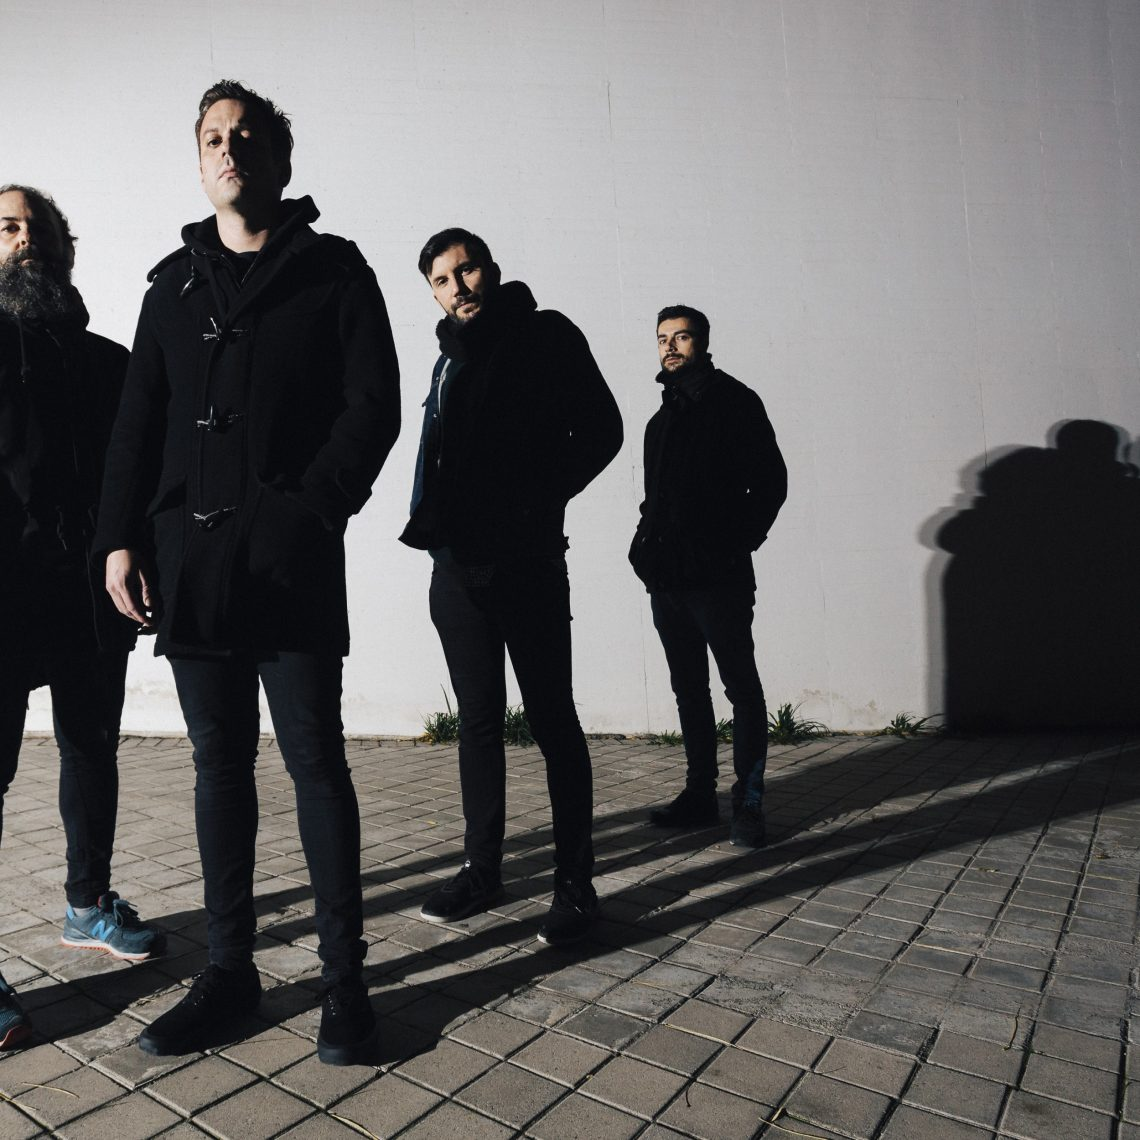 Toundra premiere second single/video from their upcoming new album / Soundtrack for 'Das Cabinet des Dr.Caligari'